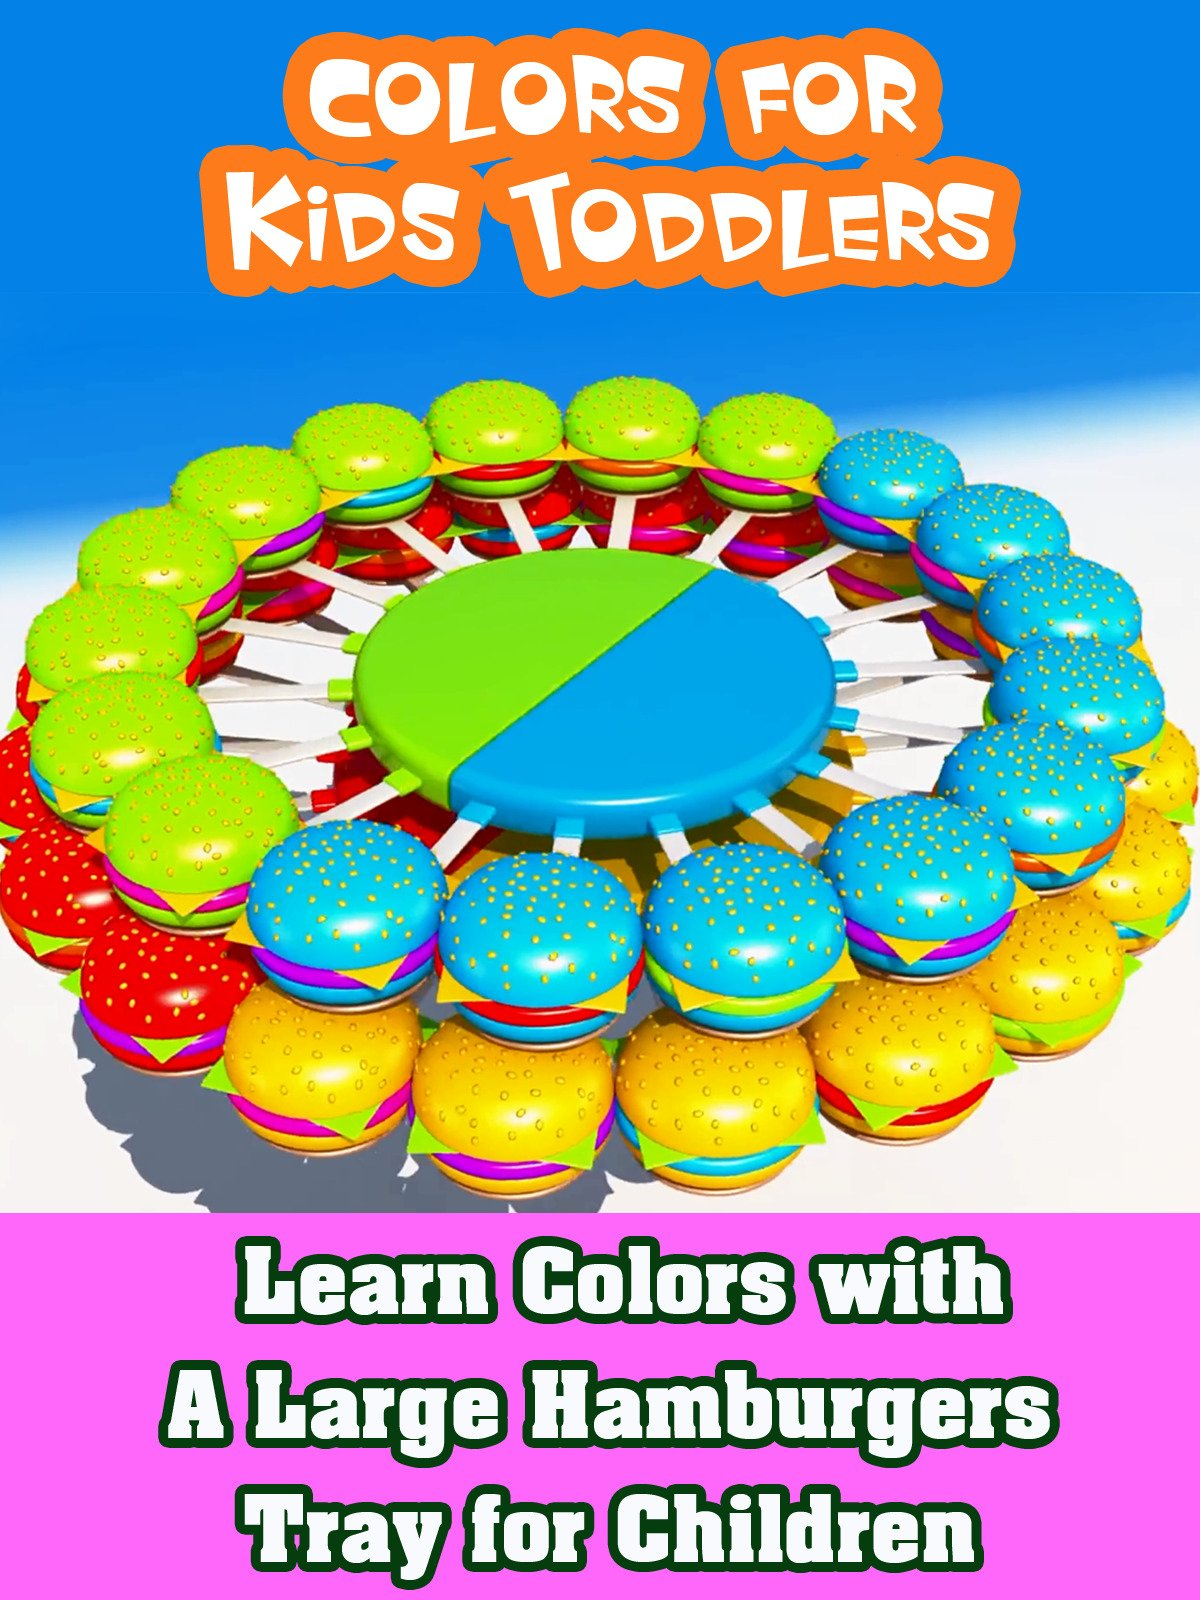 Learn Colors with A Large Hamburgers Tray for Children